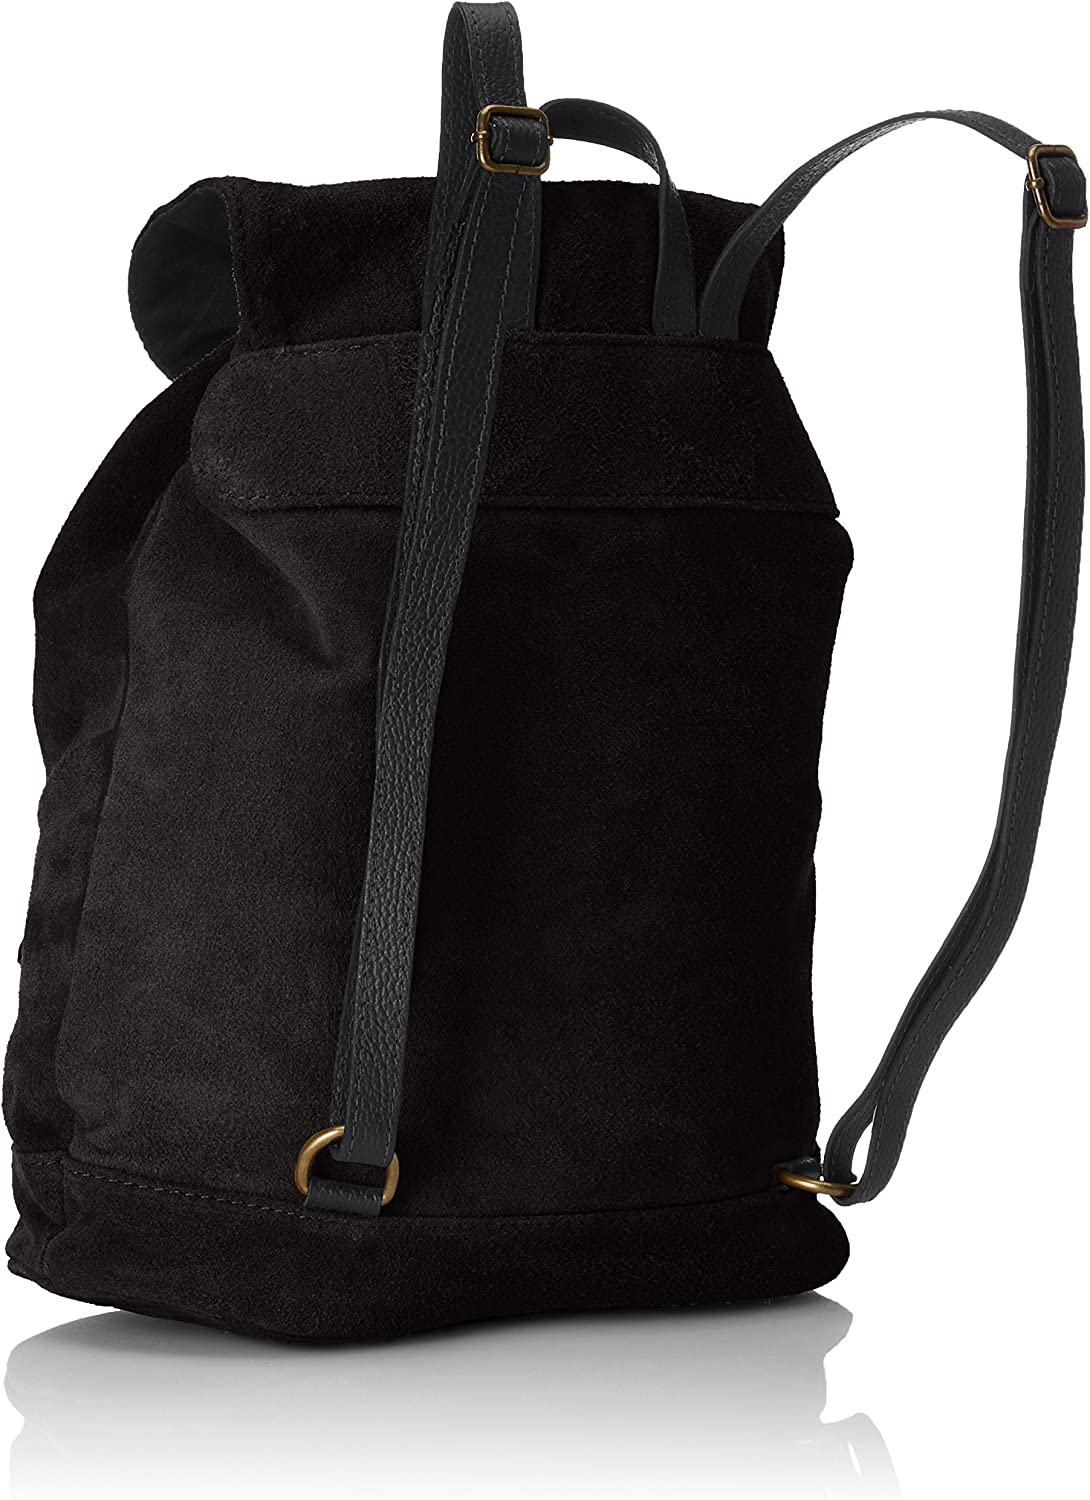 zaino borsa backpack da donna in pelle leather manico made in Italy fango 80022